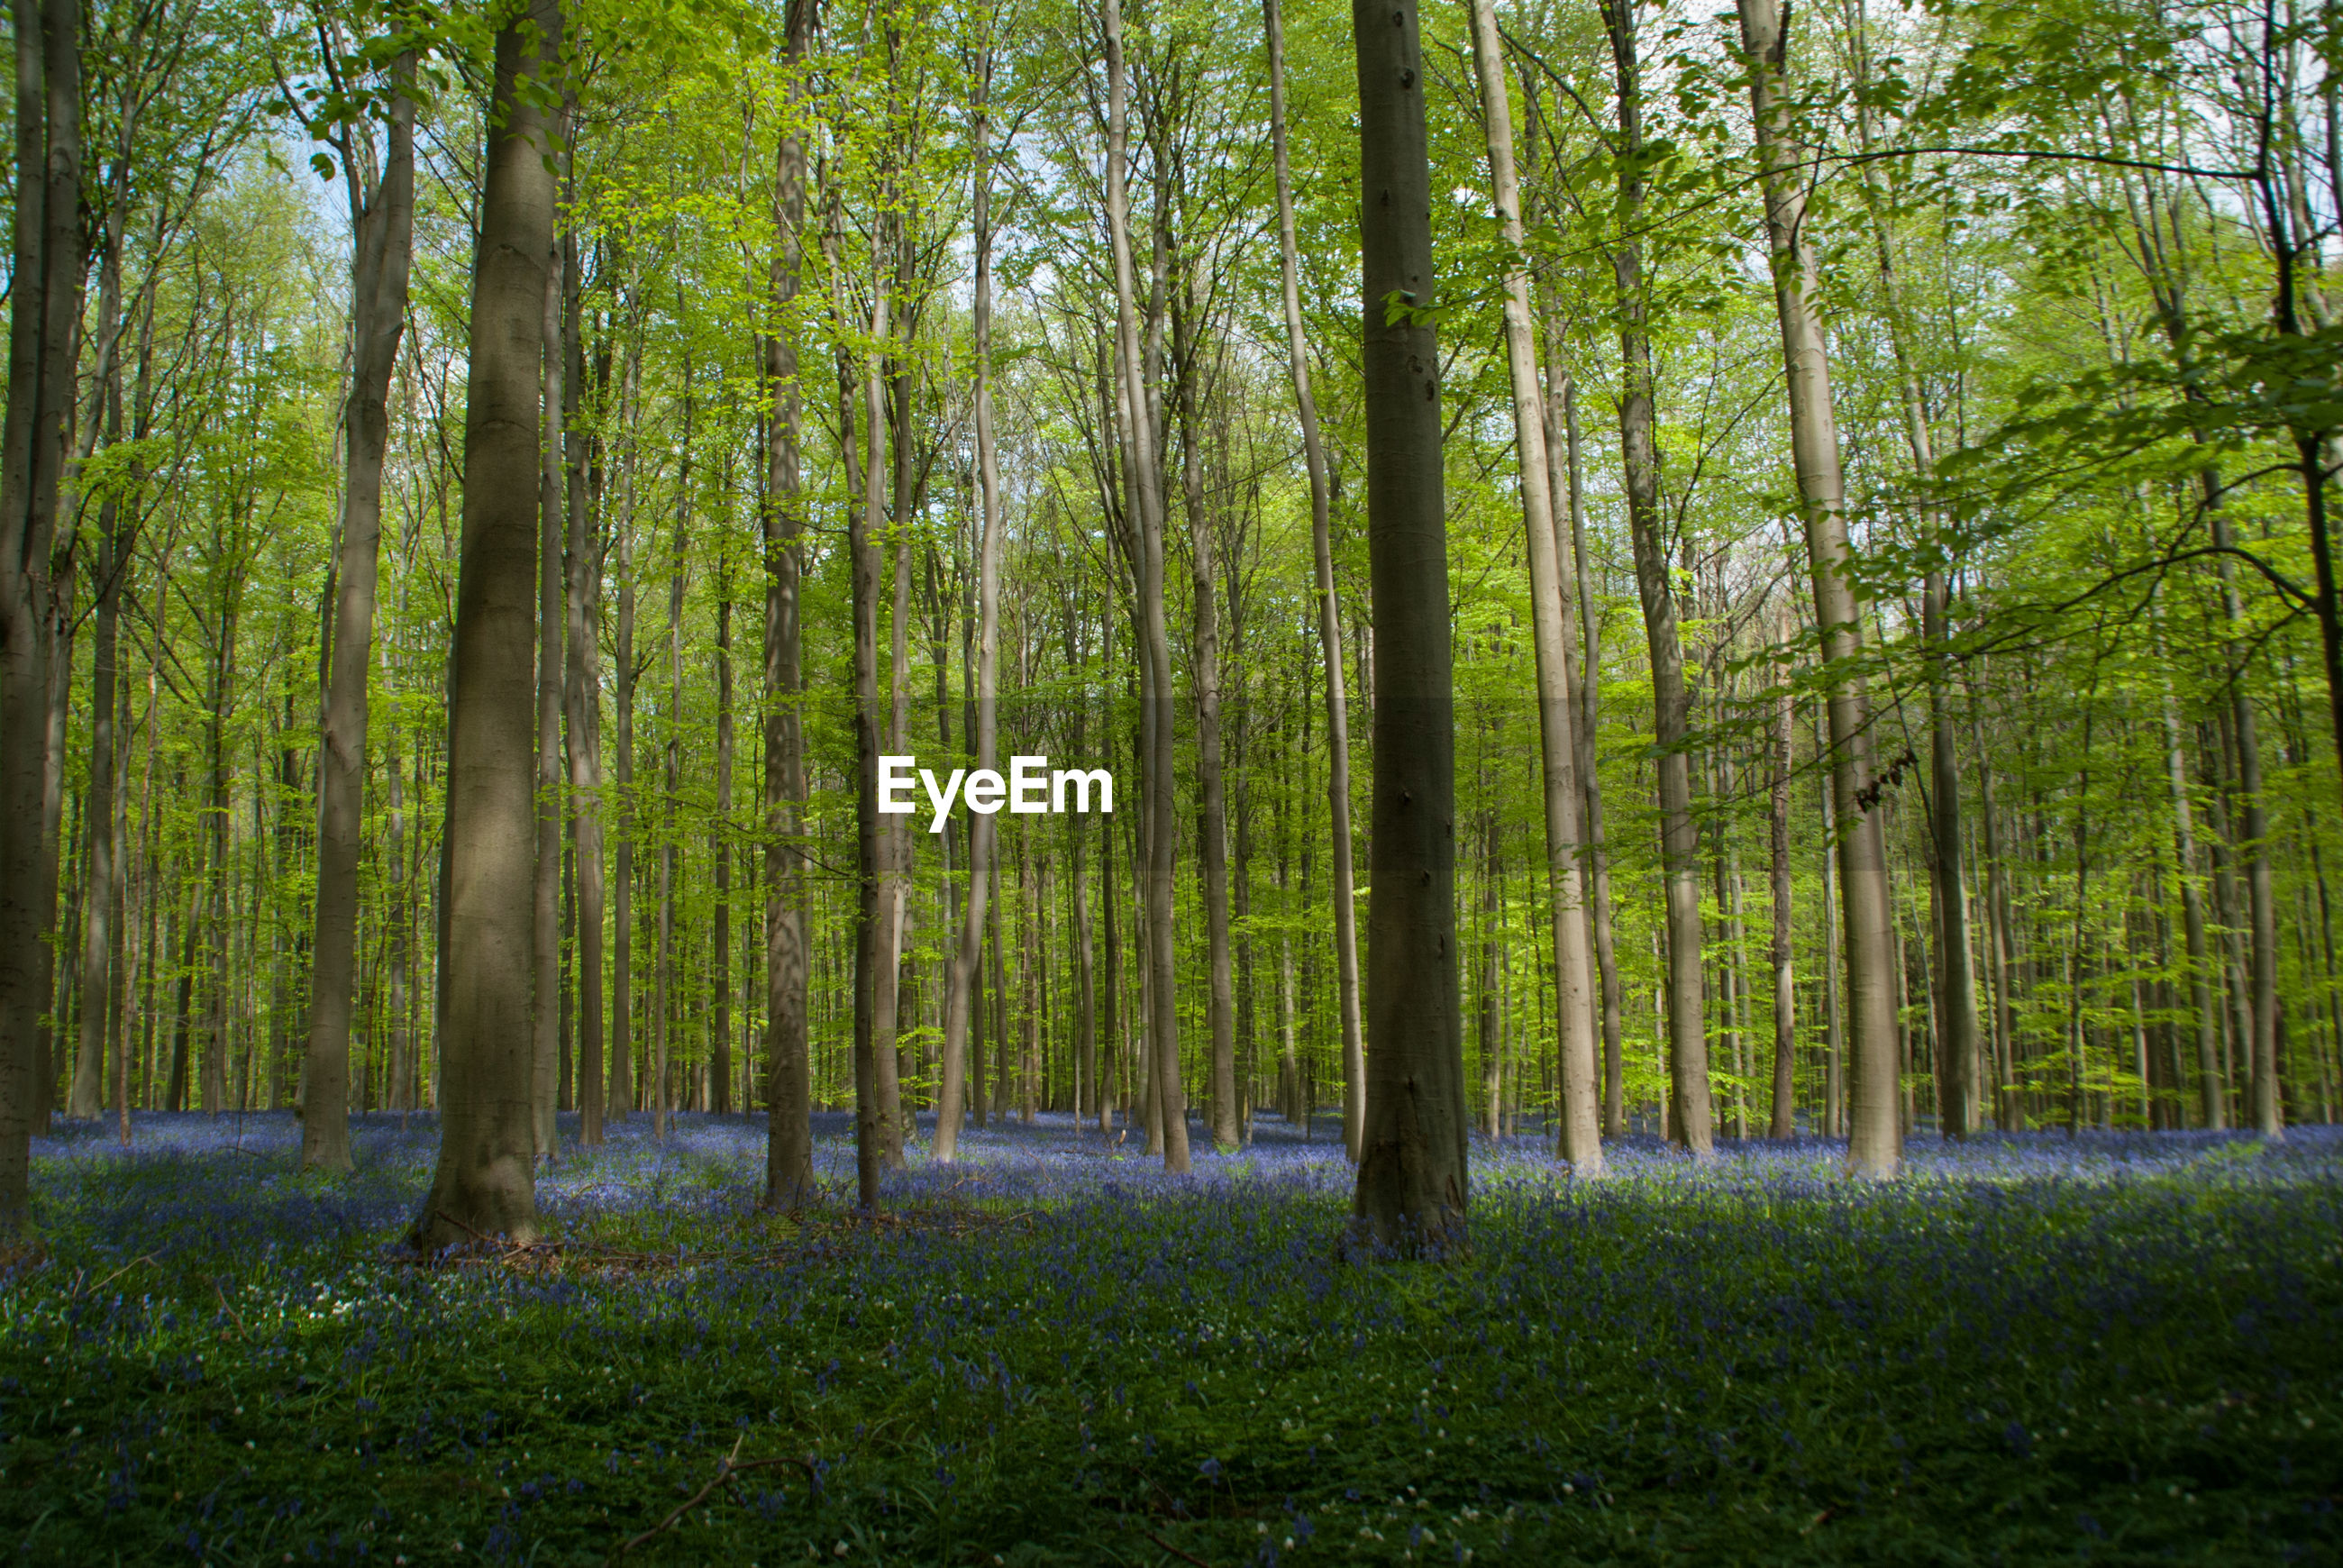 Hallerbos, blue flowers growing in the forest